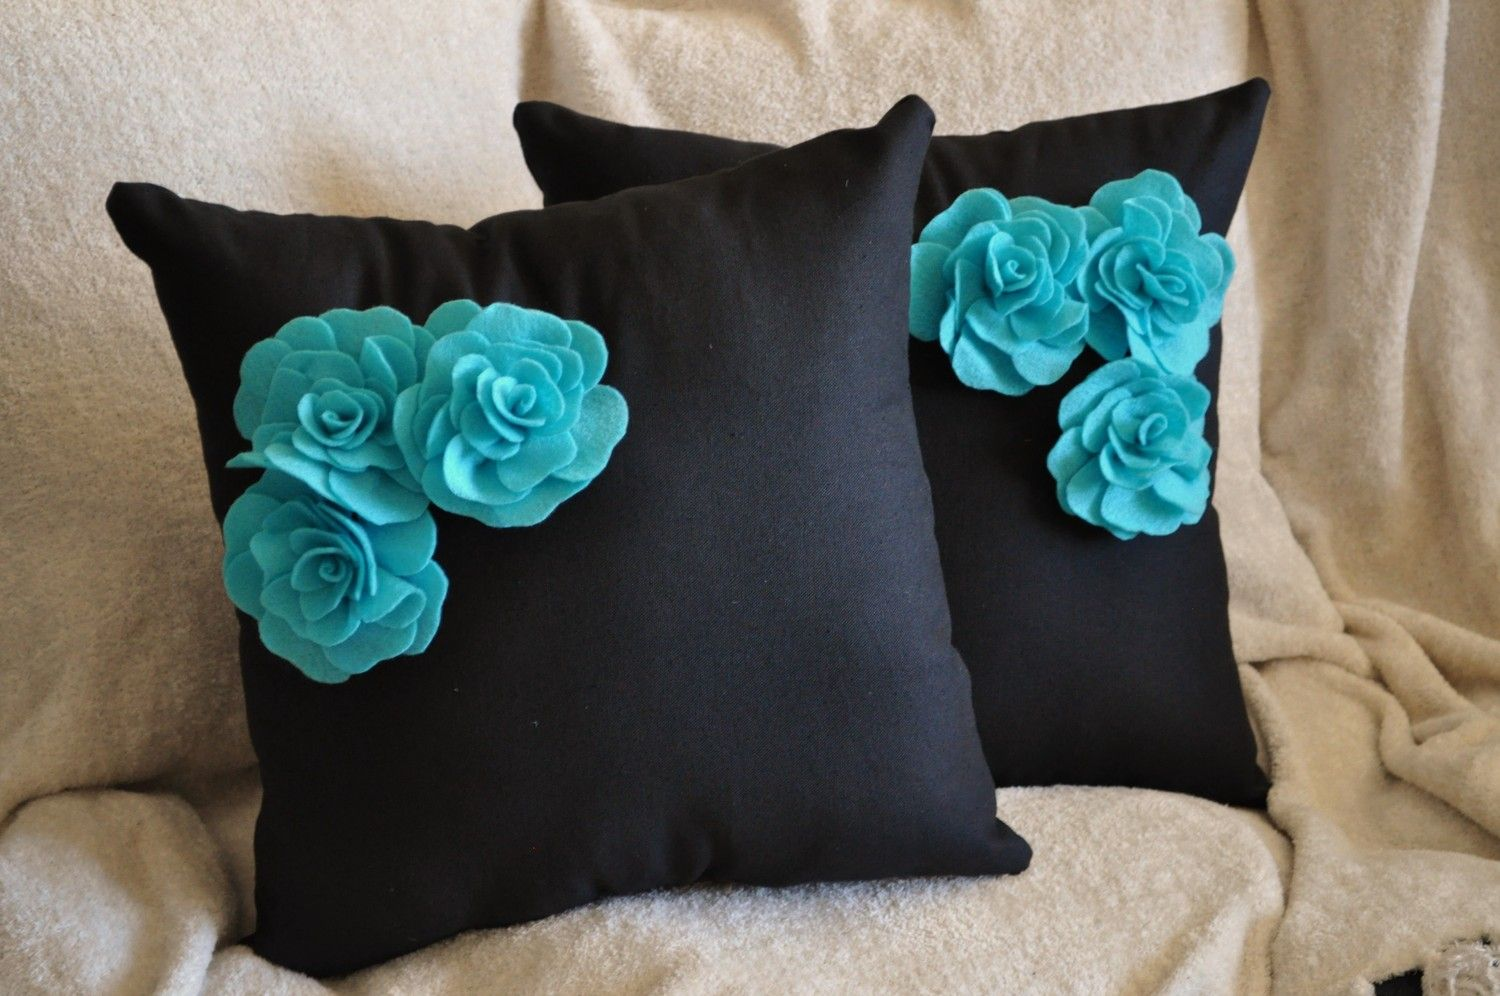 Decorative Pillow Trio : Two Decorative Pillows - Turquoise Felt Rose Trio on Black Pillows 14